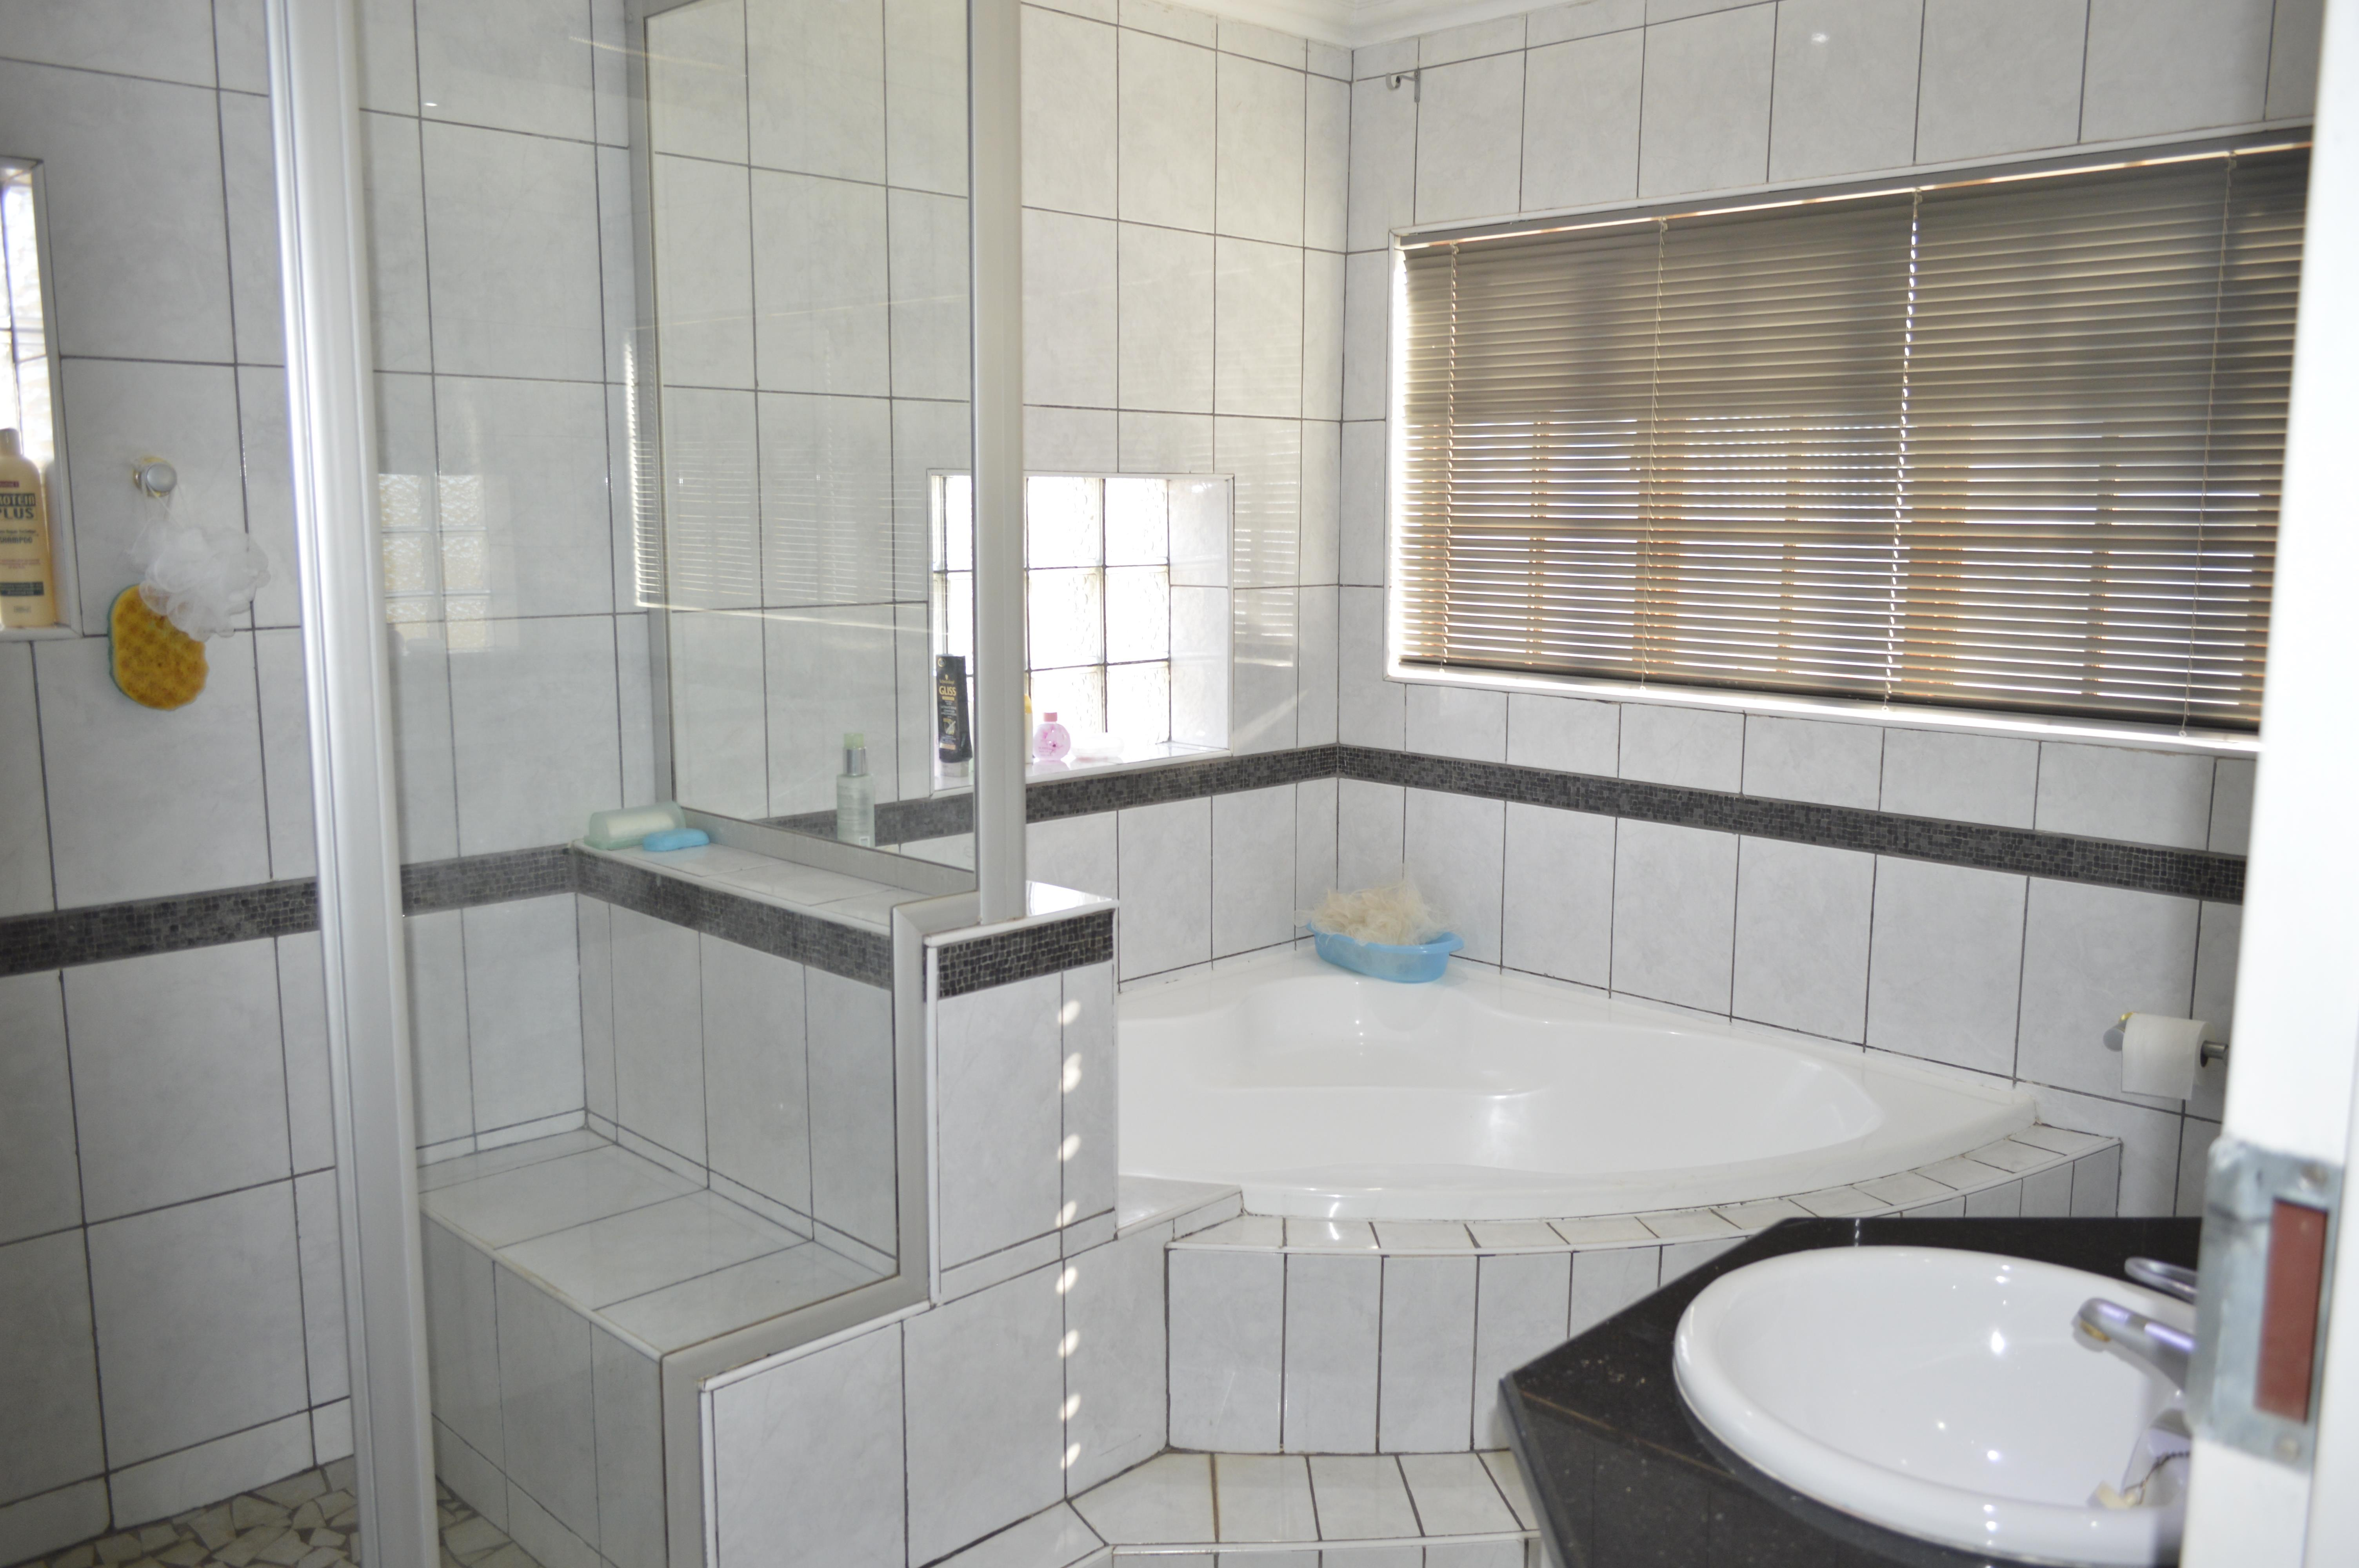 Raslouw A H property for sale. Ref No: 13442161. Picture no 12